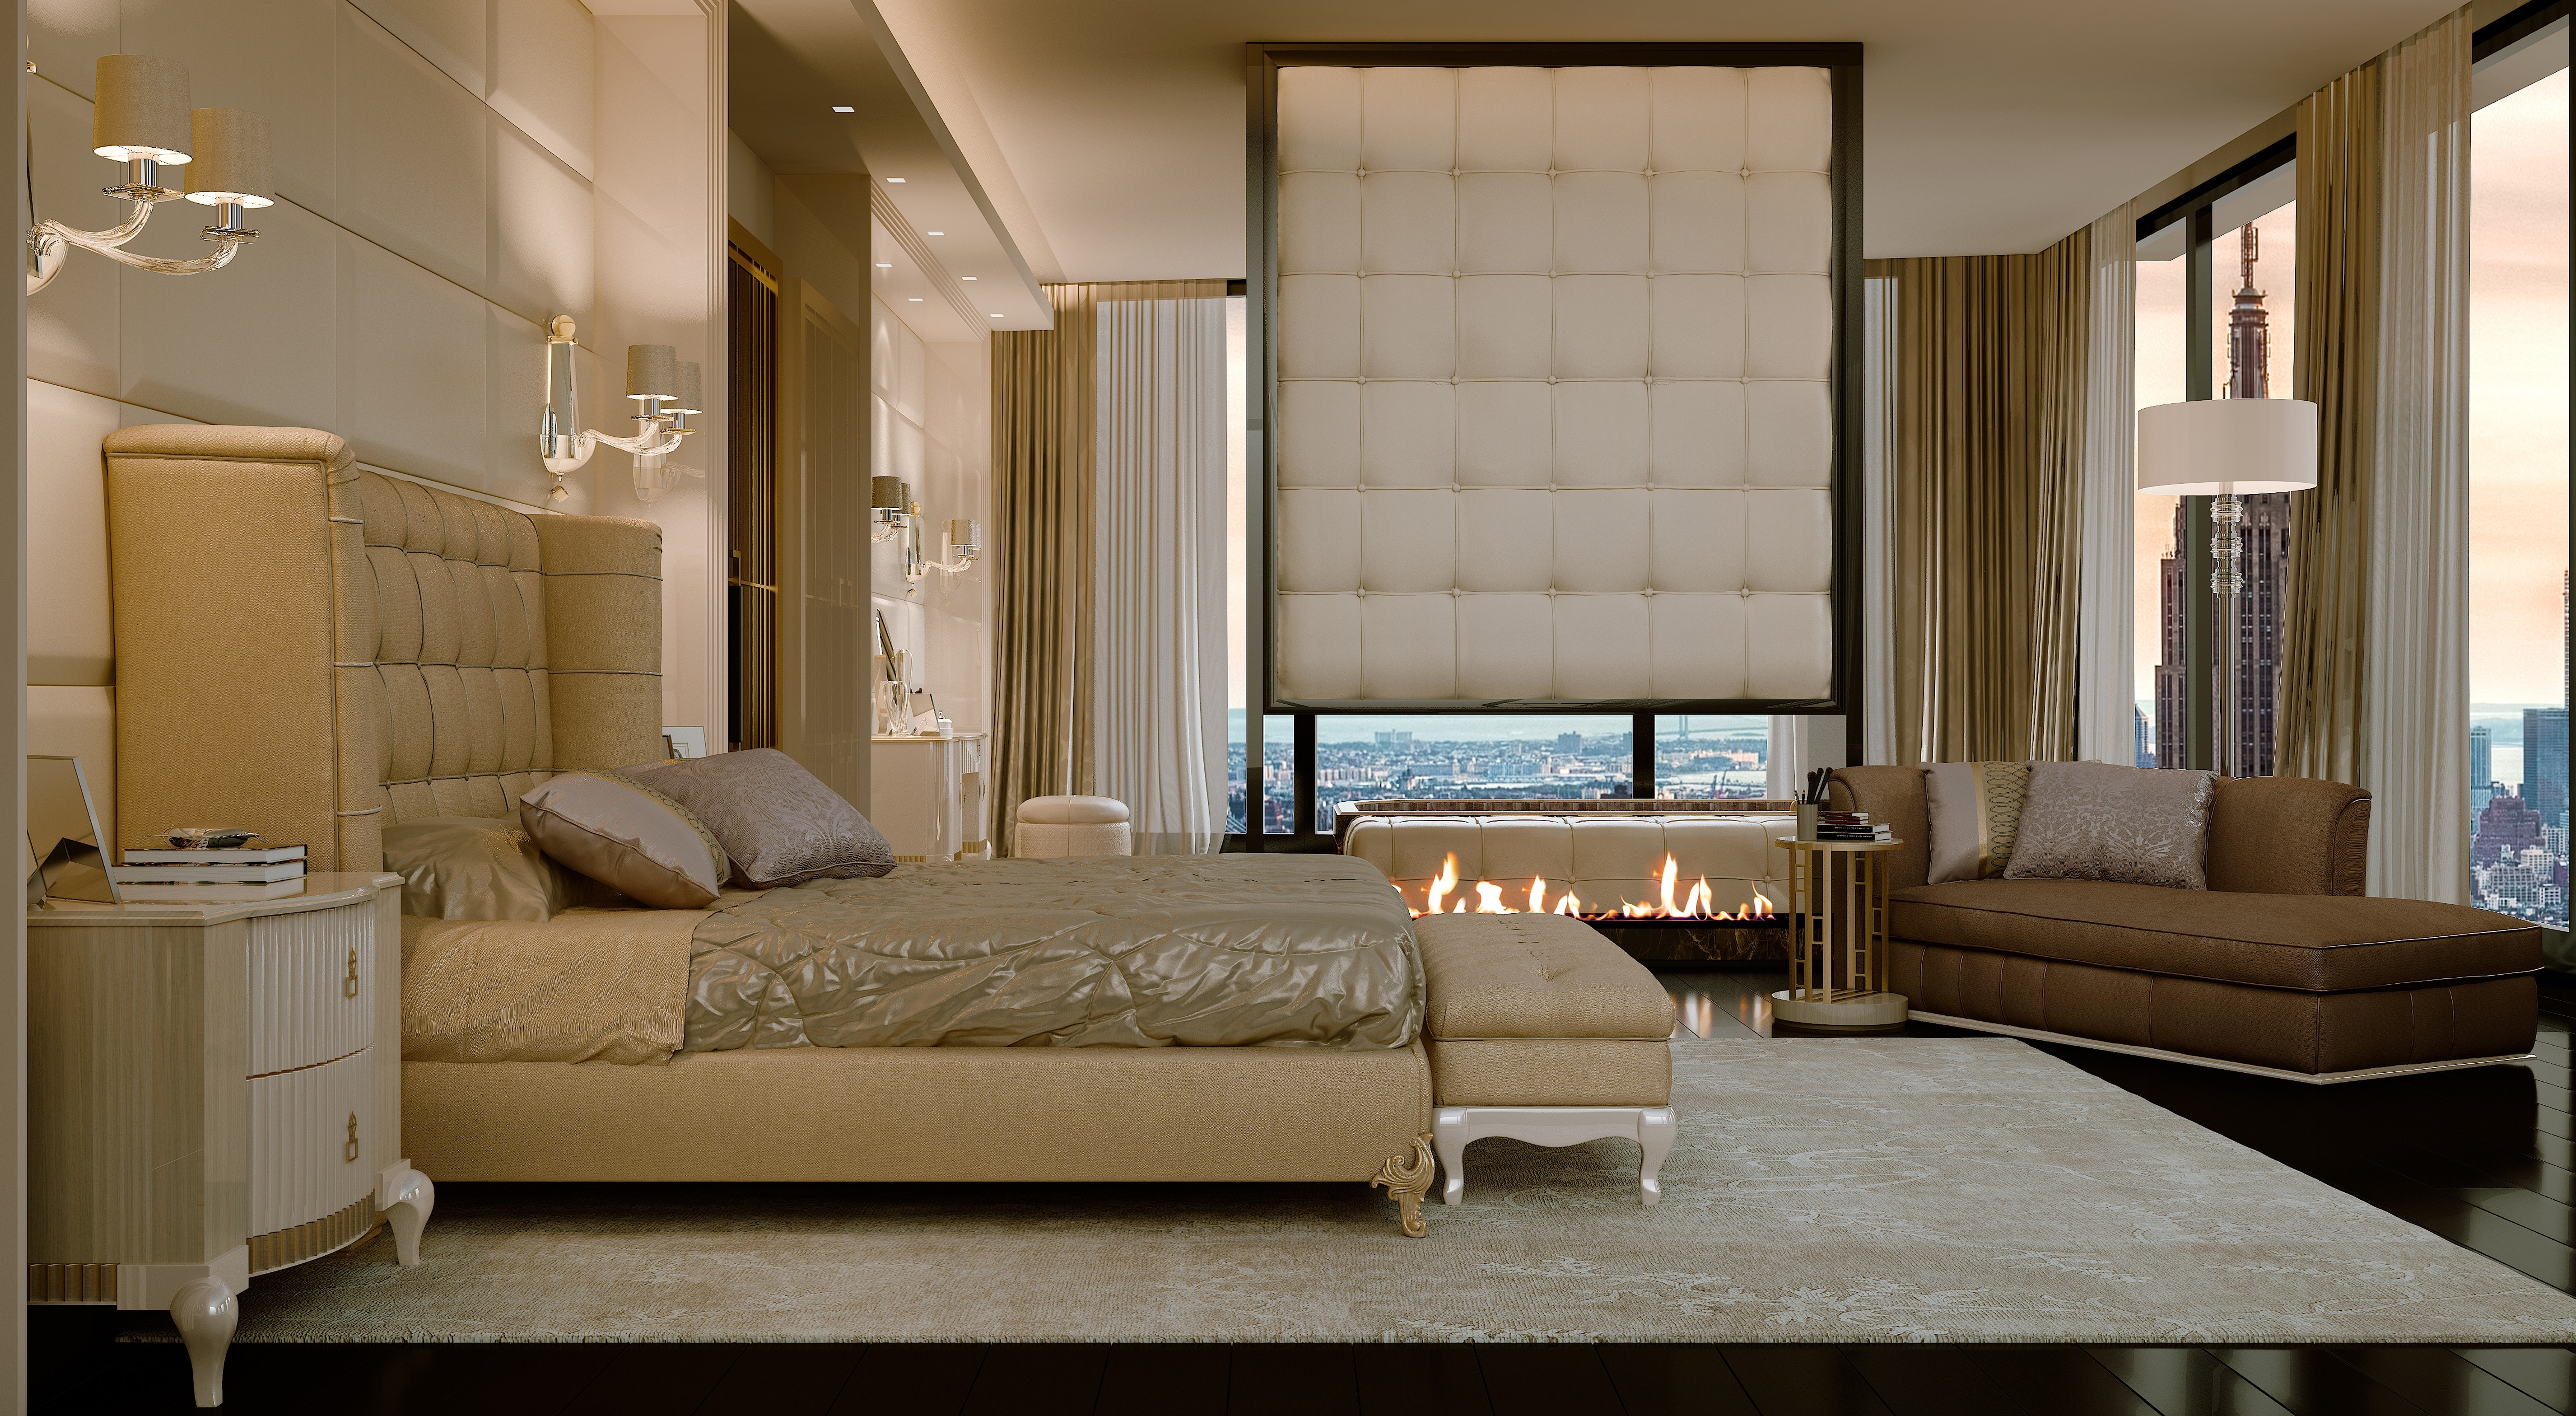 Luxurious bed with Tall and tufted headboard